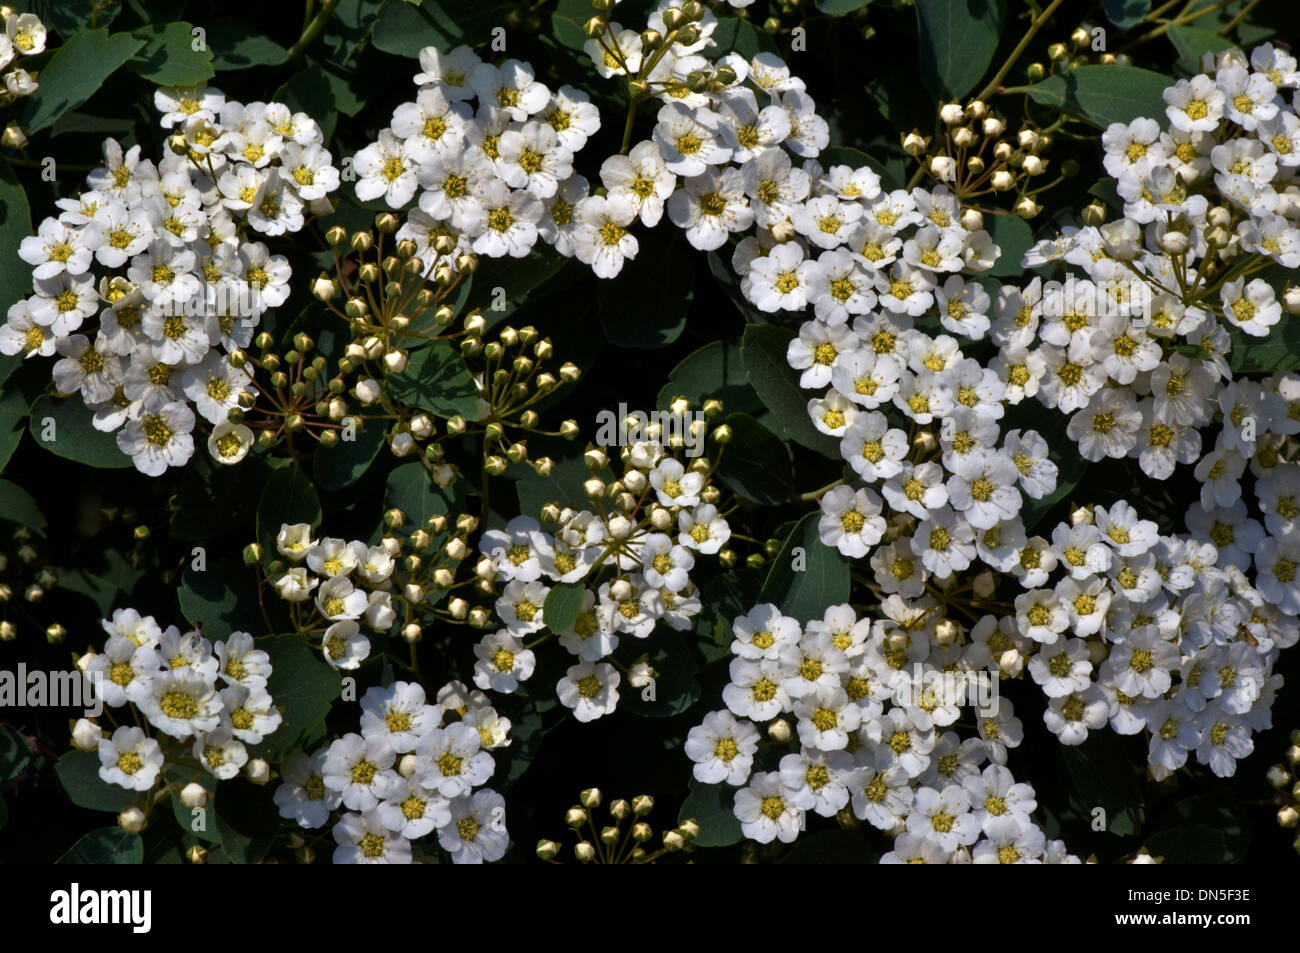 Tiny white flowers in cluster stock photos tiny white flowers in tiny white bridals wreath flowers spiraea blooming on the shrub in early spring mightylinksfo